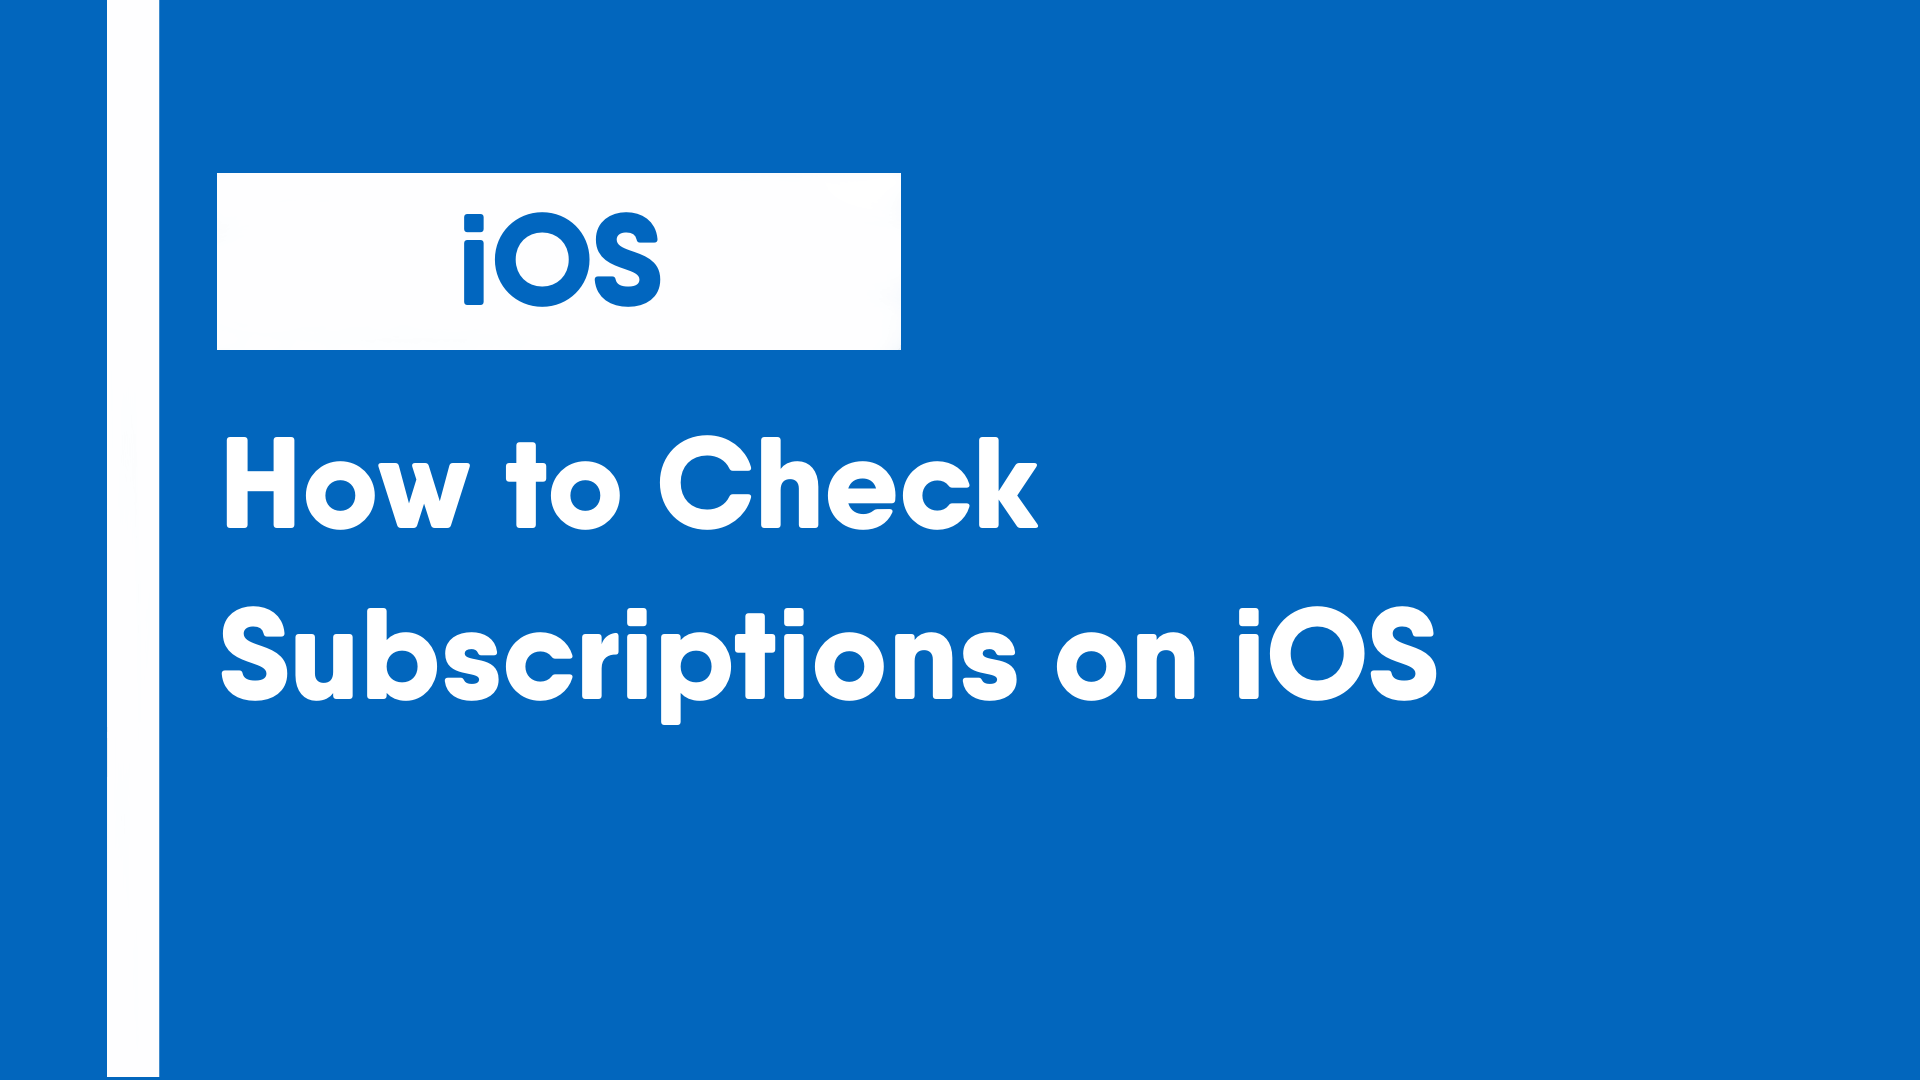 How to Check Subscriptions on iOS